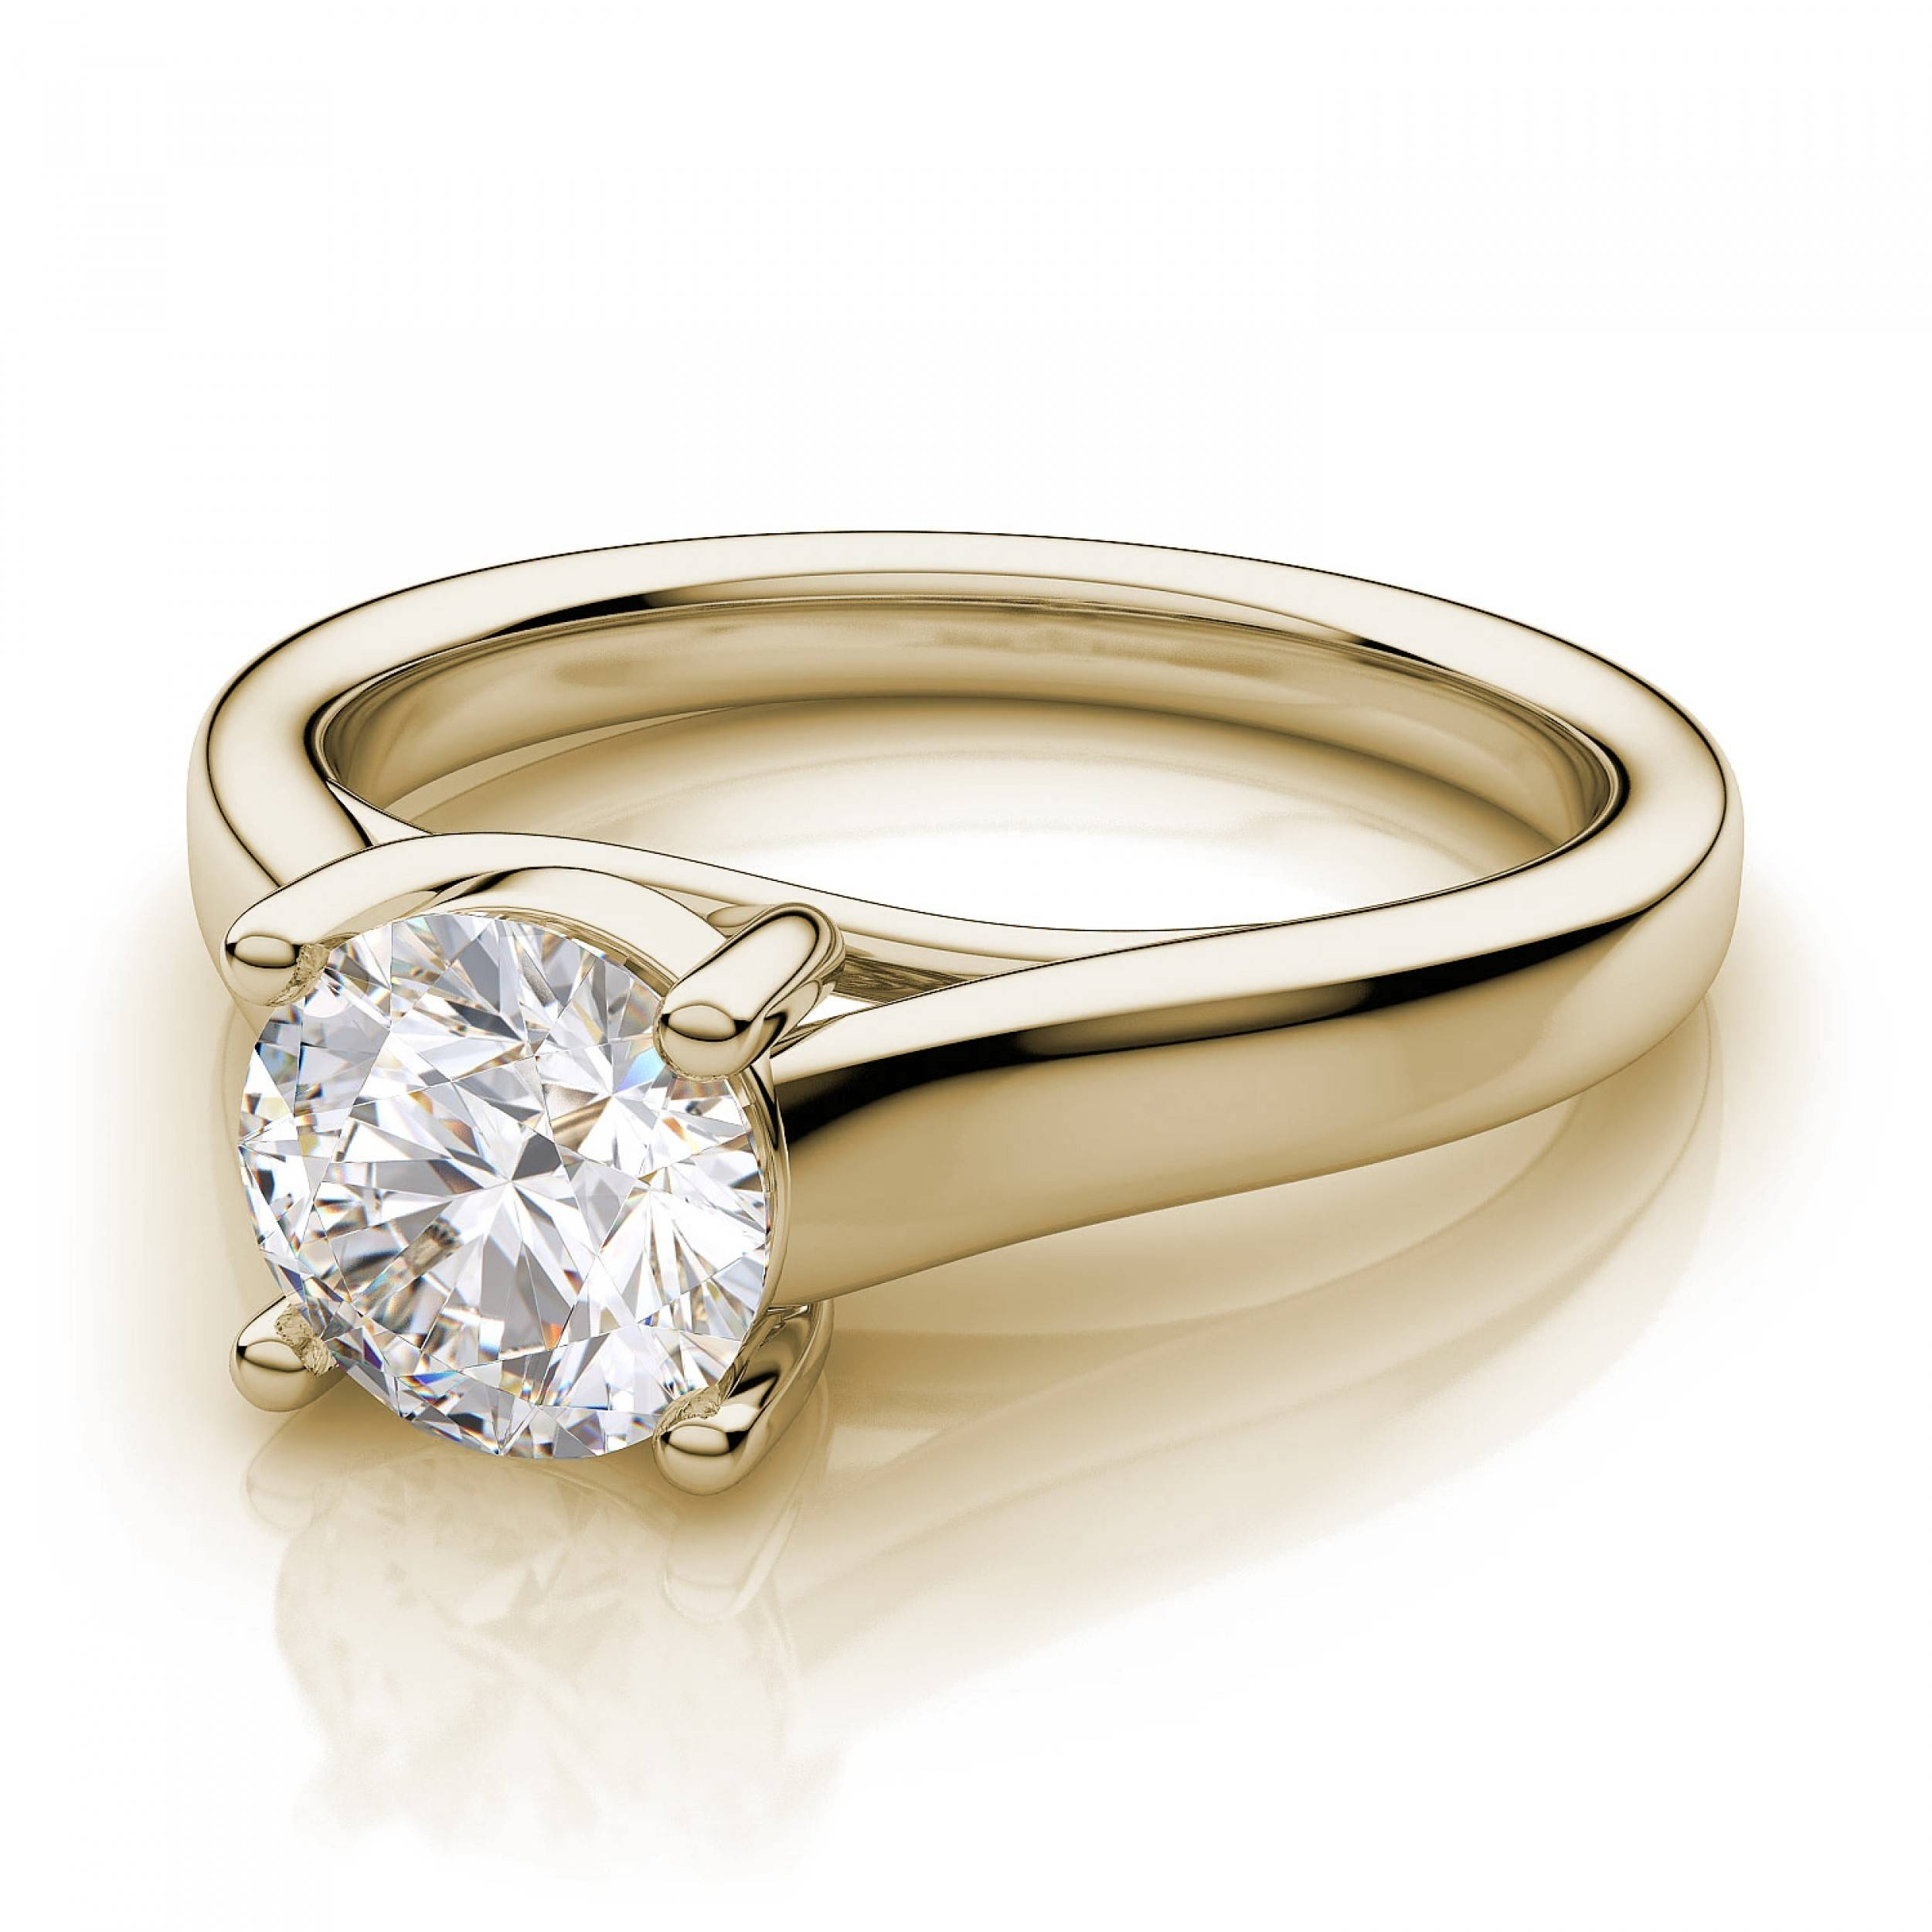 Solitaire Engagement Ring – 18K Yellow Gold Pertaining To Engagement Rings 18K Yellow Gold (View 12 of 15)